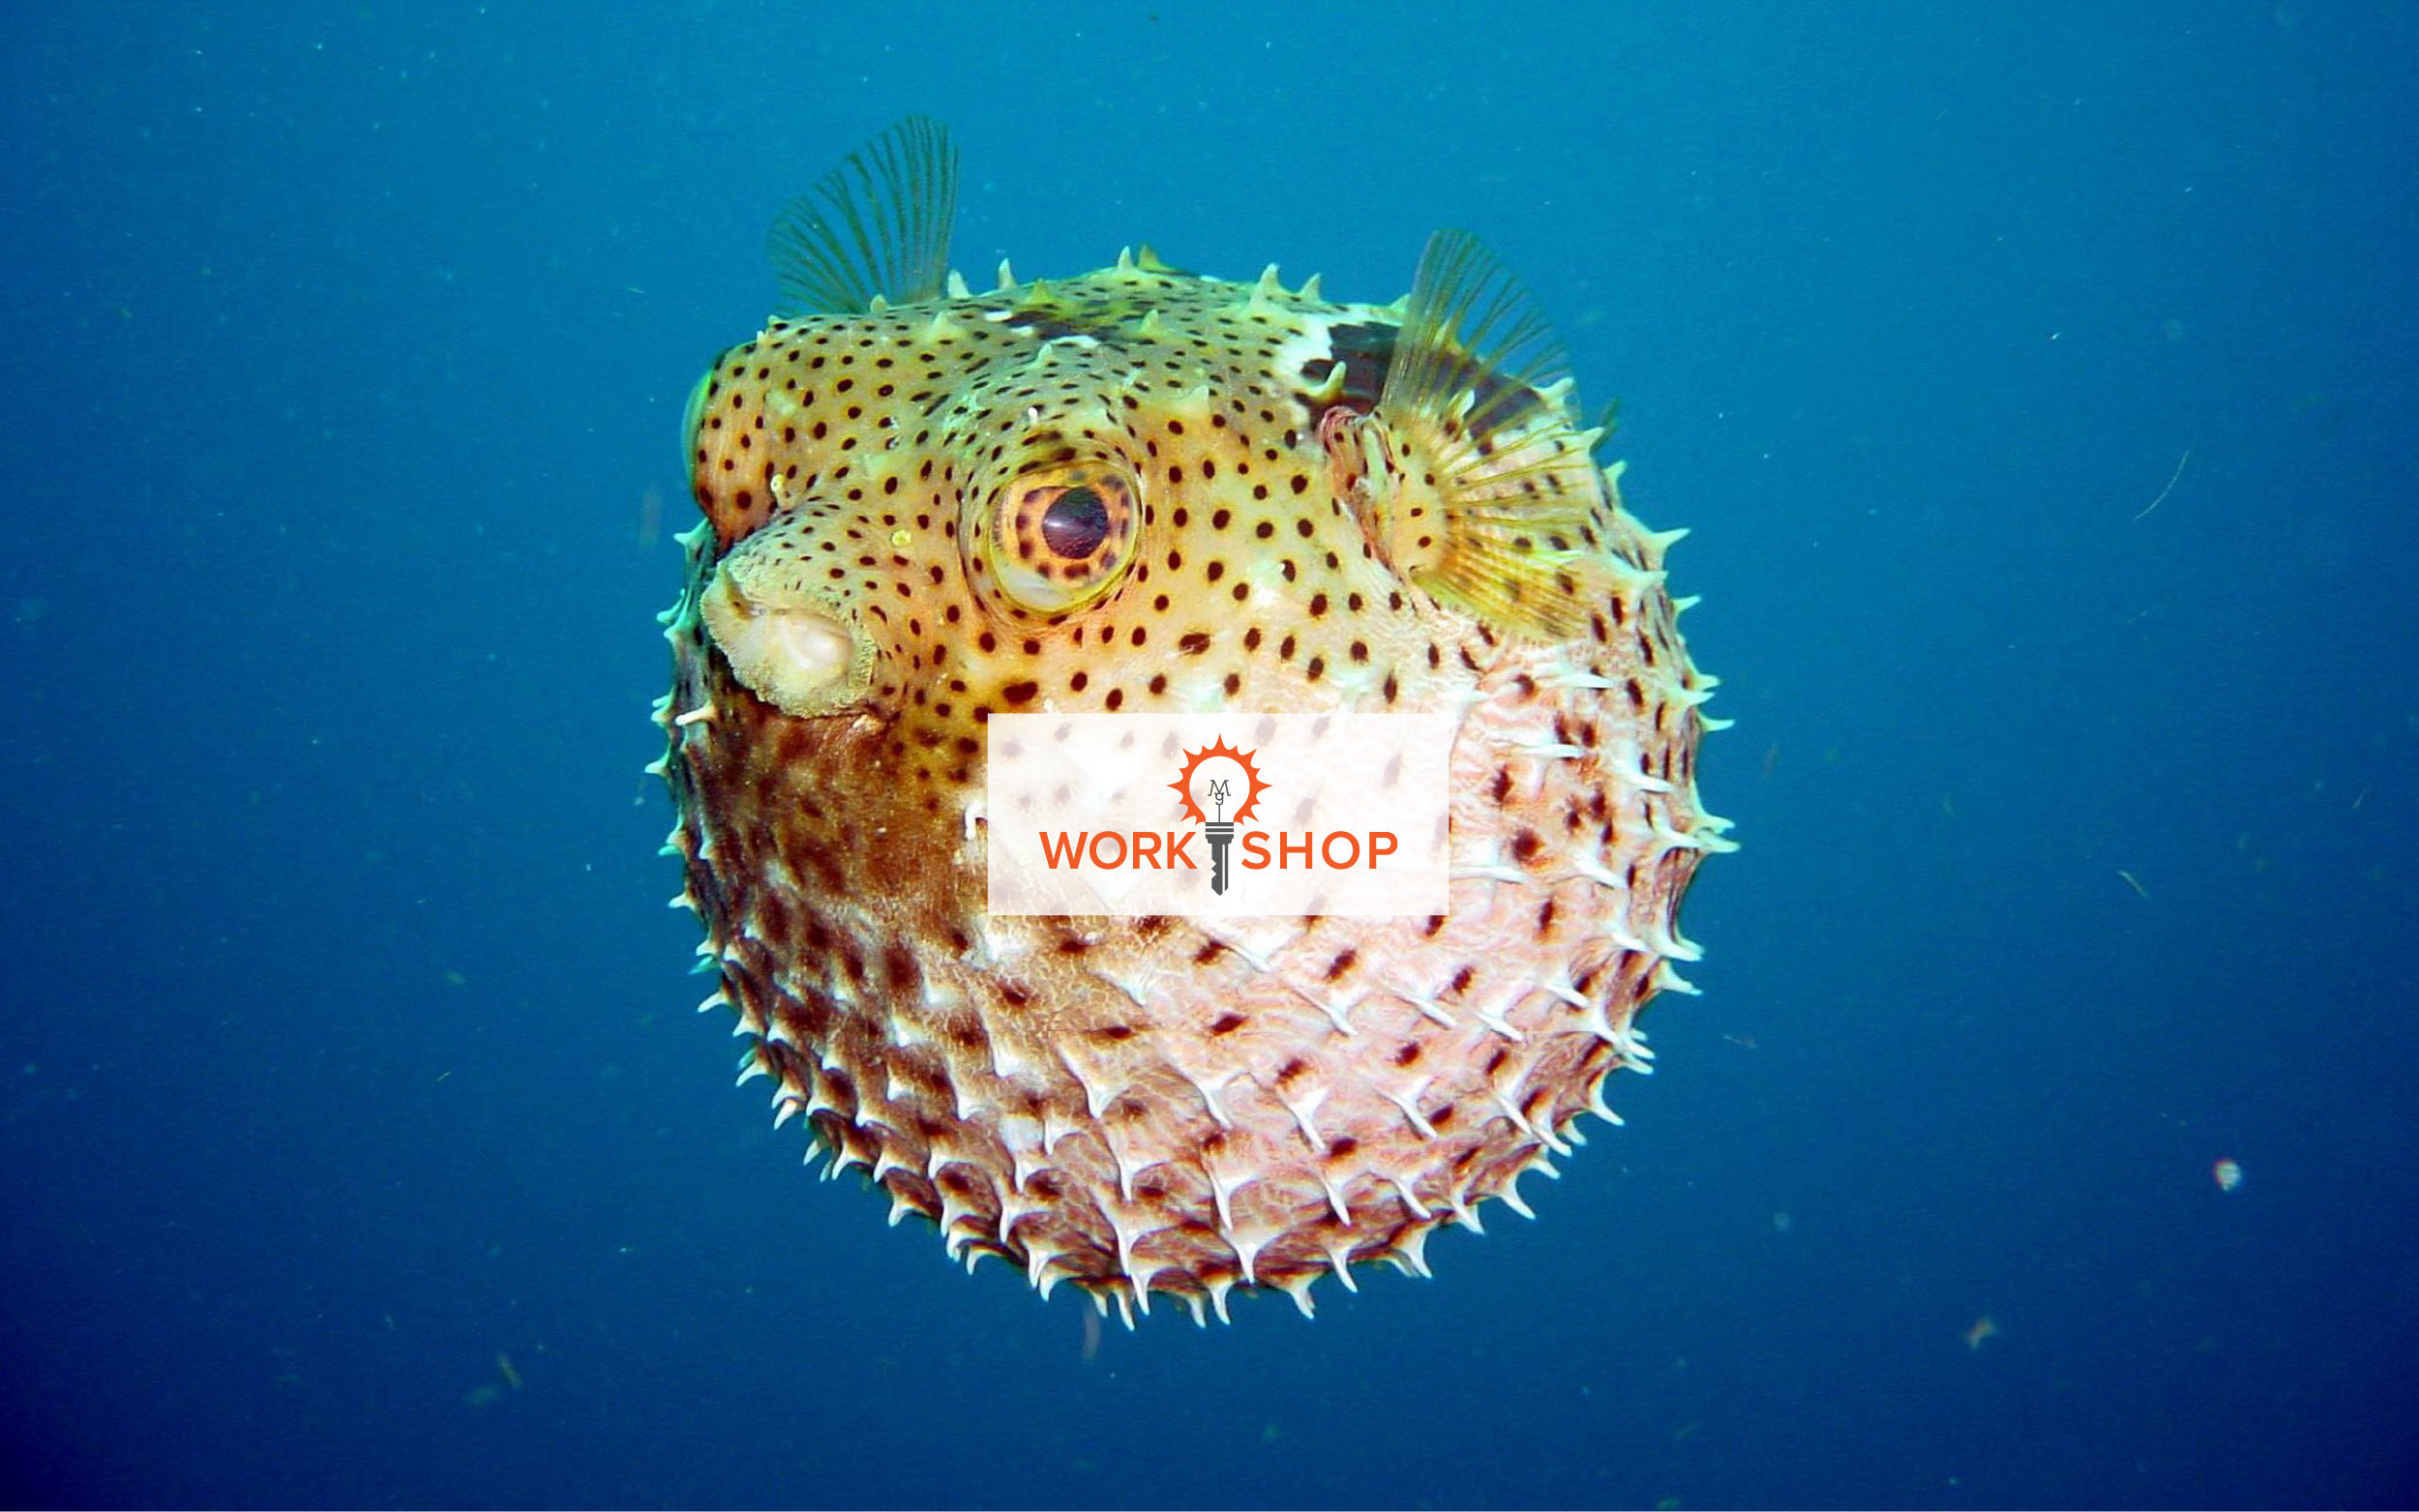 PufferFish-work.shop